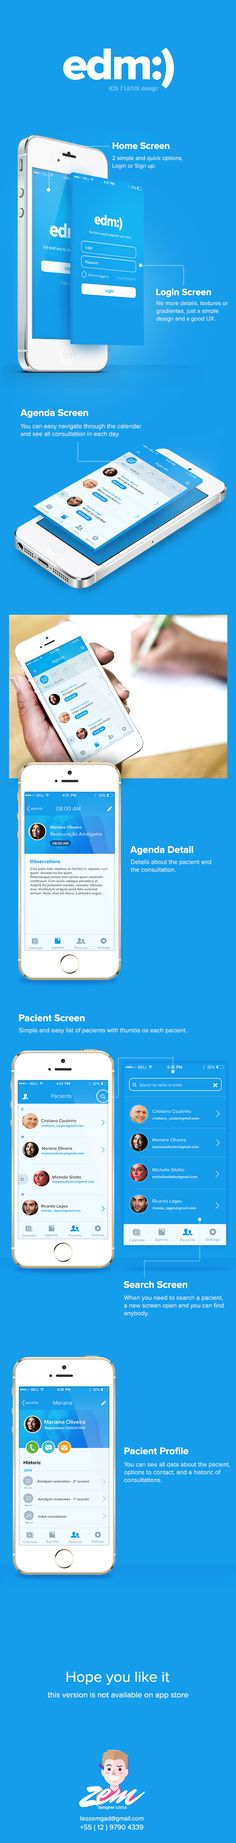 EDM - New mobile design by Leonardo Zem, via Behance